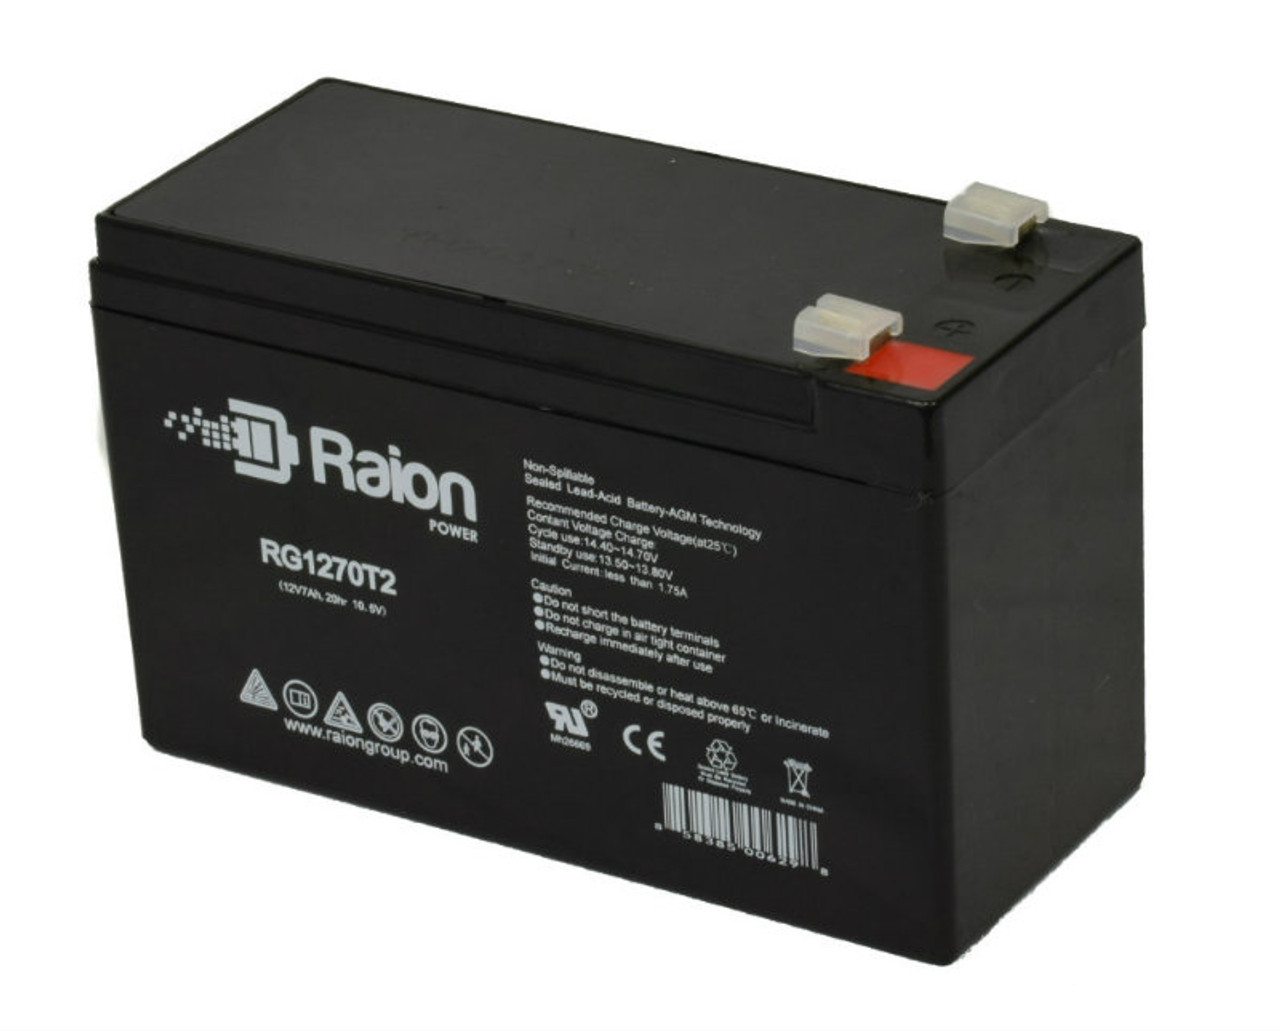 Raion Power RG1270T1 Replacement Battery for Ritar RT1272